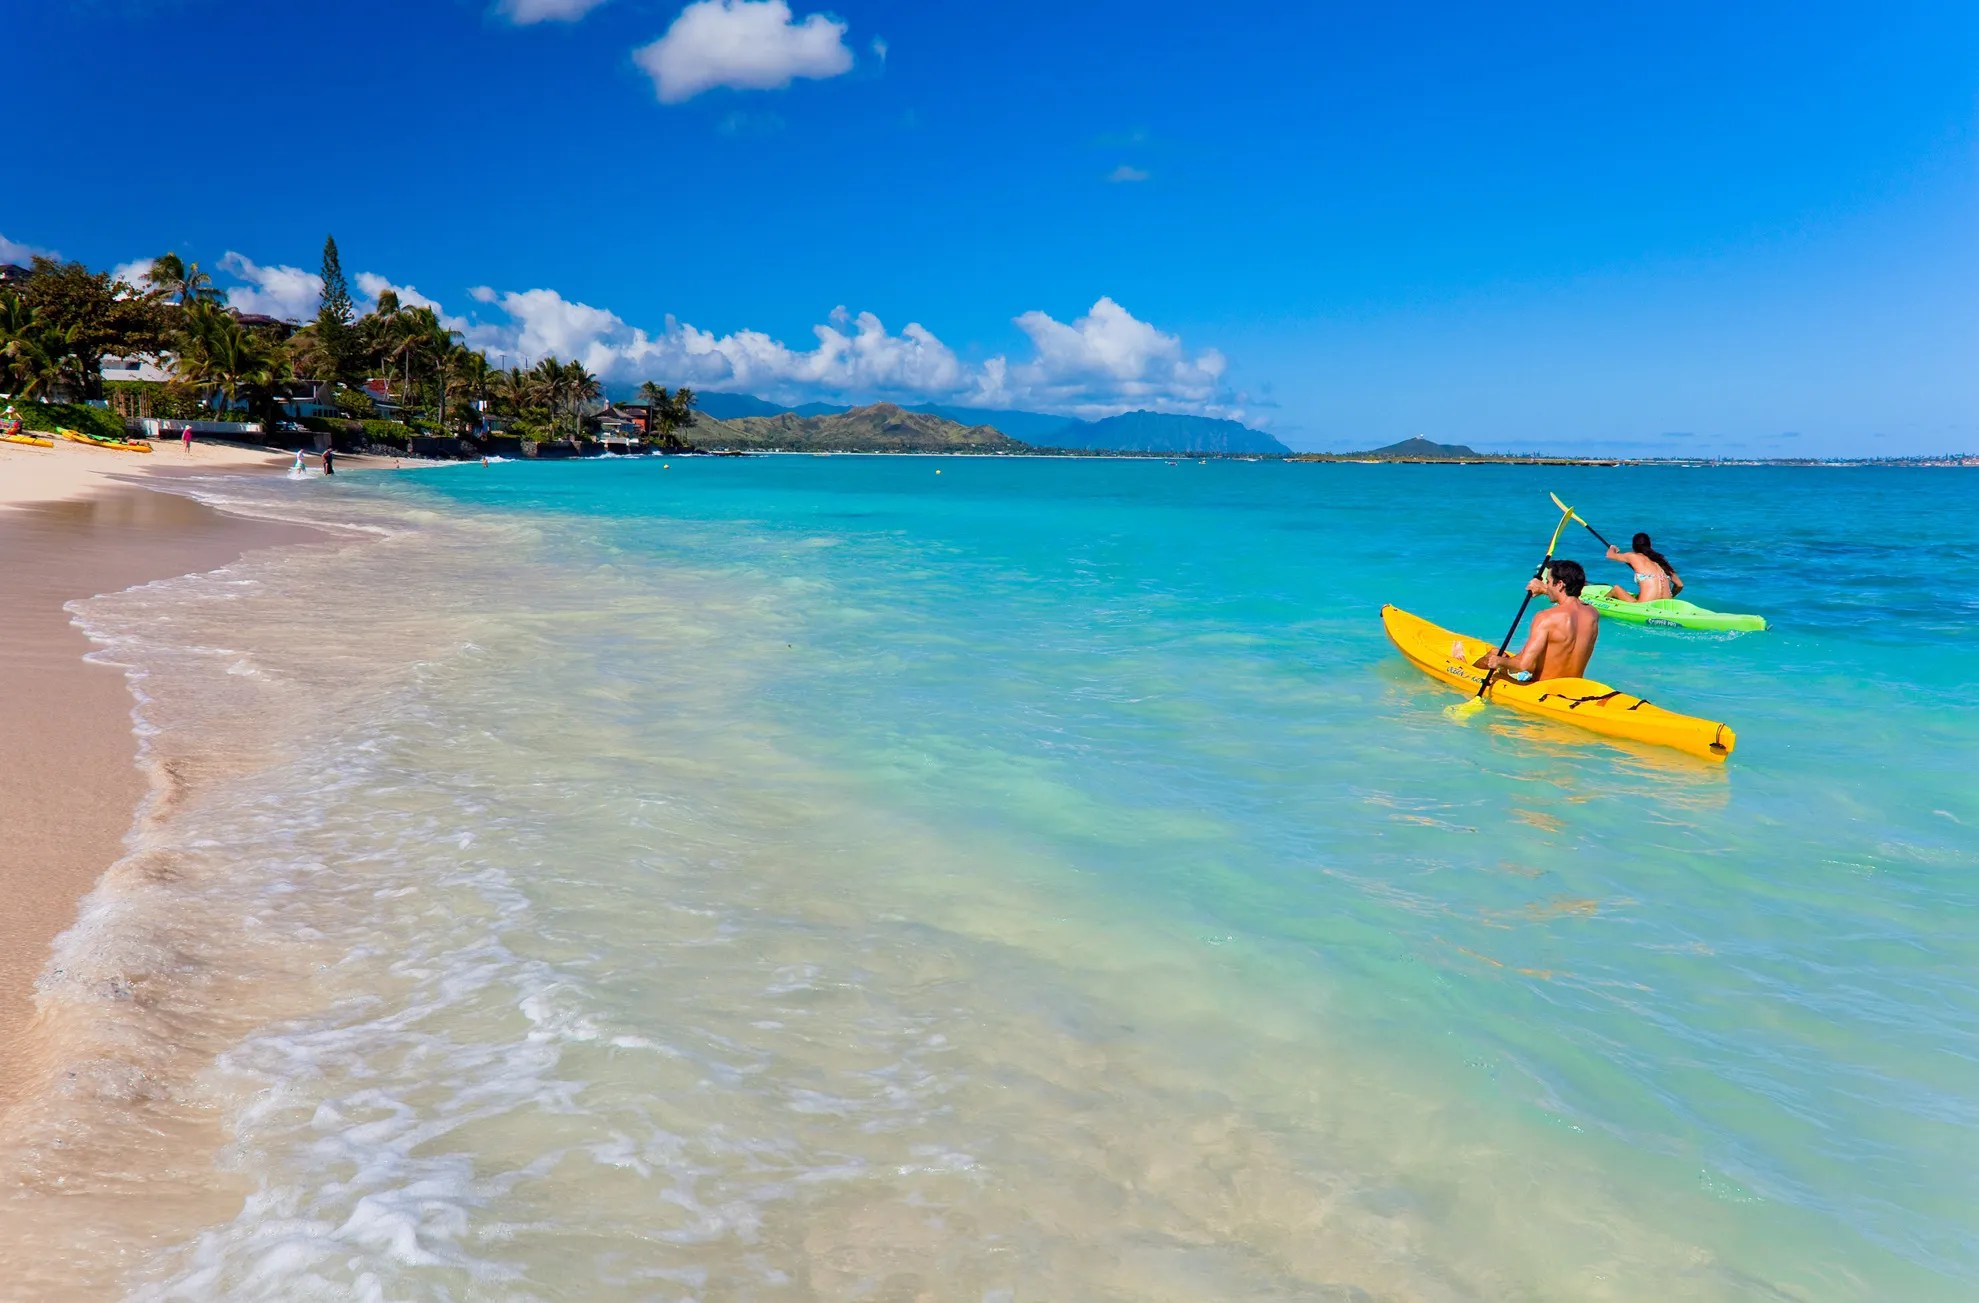 Hidden gems  on Hawaii s island of Oahu   The Seattle Times Away from Waikiki crowds  try kayaking at Kailua  on the eastern  windward  coast